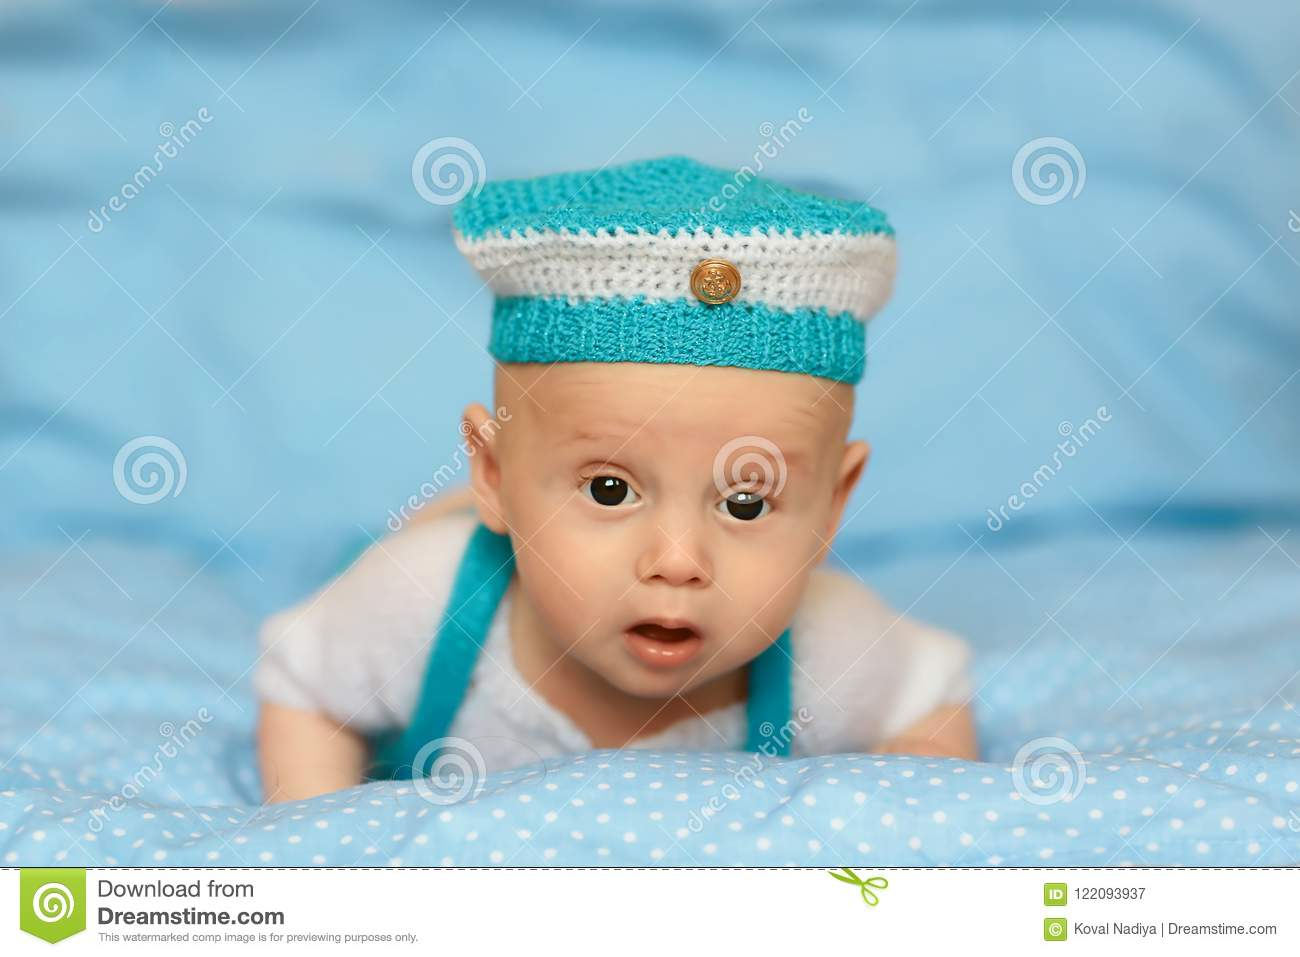 Portrait of a cute 3 months baby lying down in a blue hat on a blanket